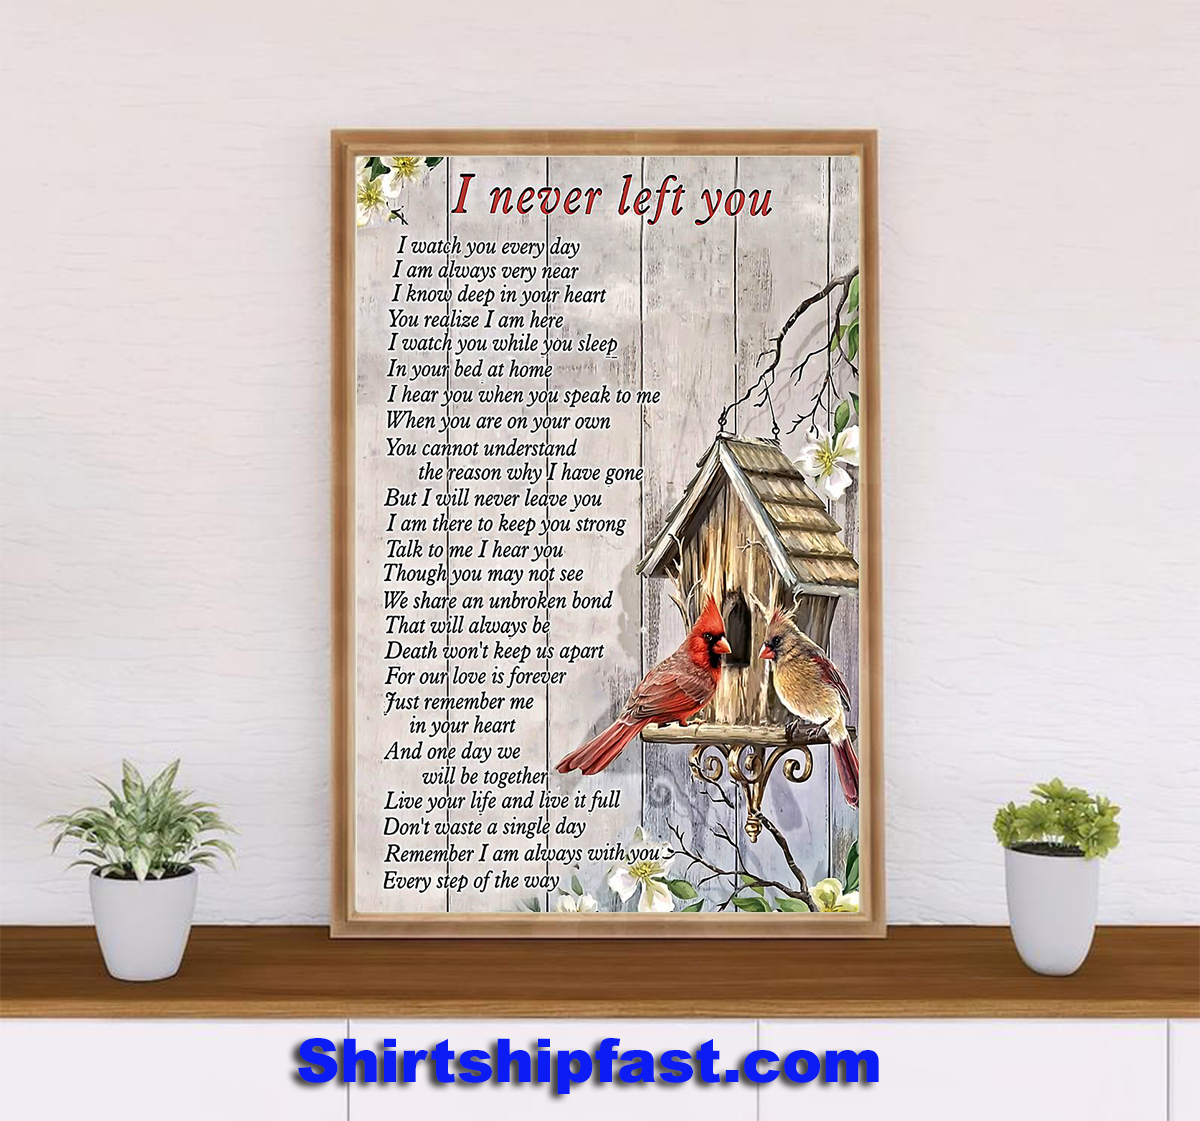 Cardinal i never left you poster - Picture 2